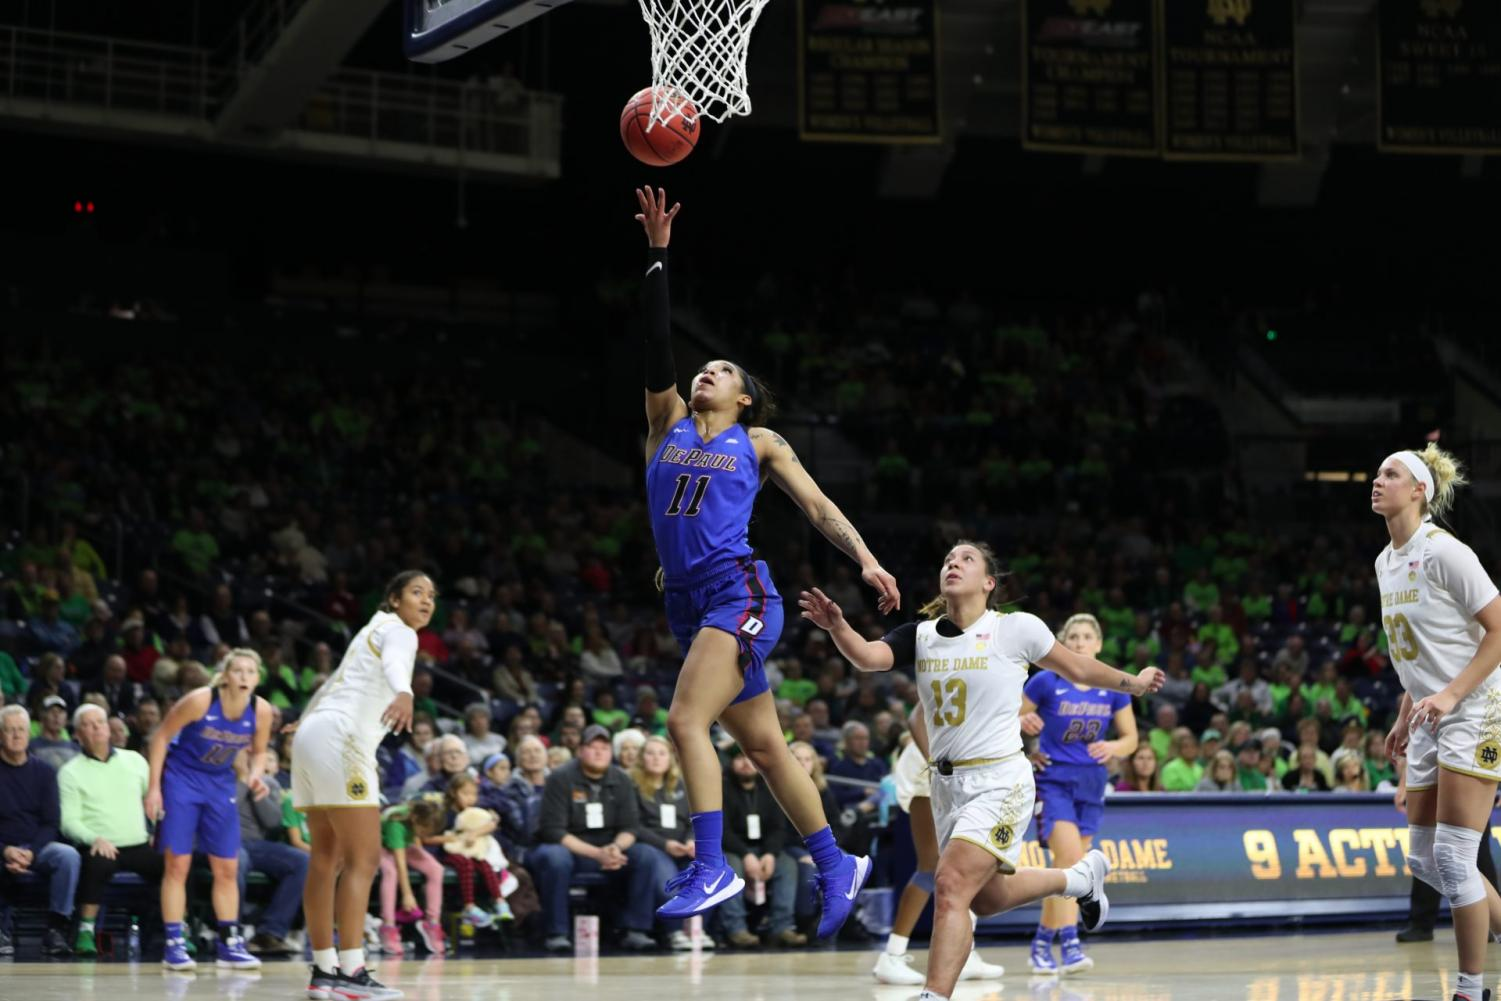 Sonya Morris goes up for a layup in the fourth quarter of her 29 point performance against Notre Dame.